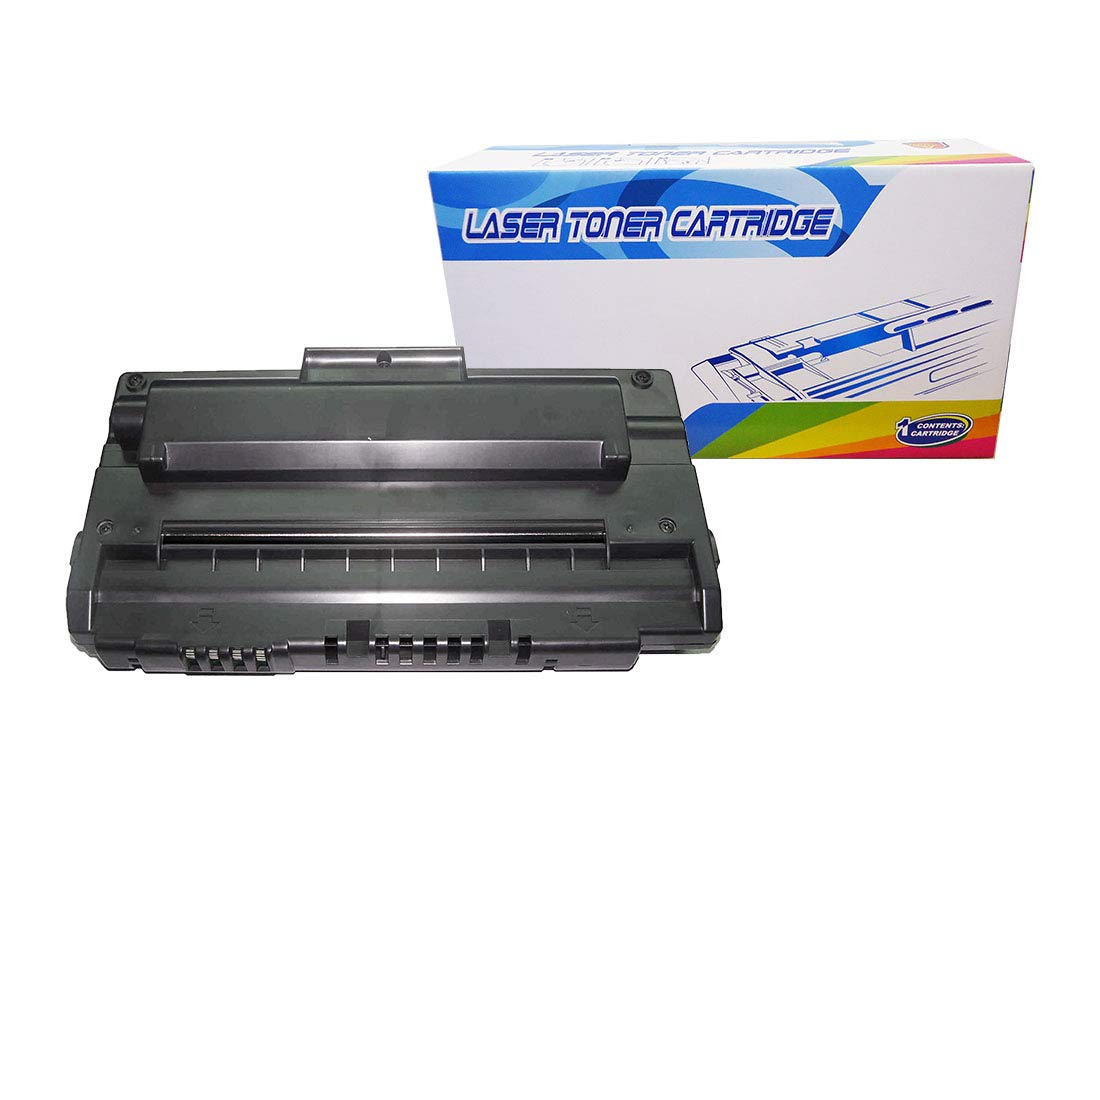 DELL PRINTER 1600N DRIVERS